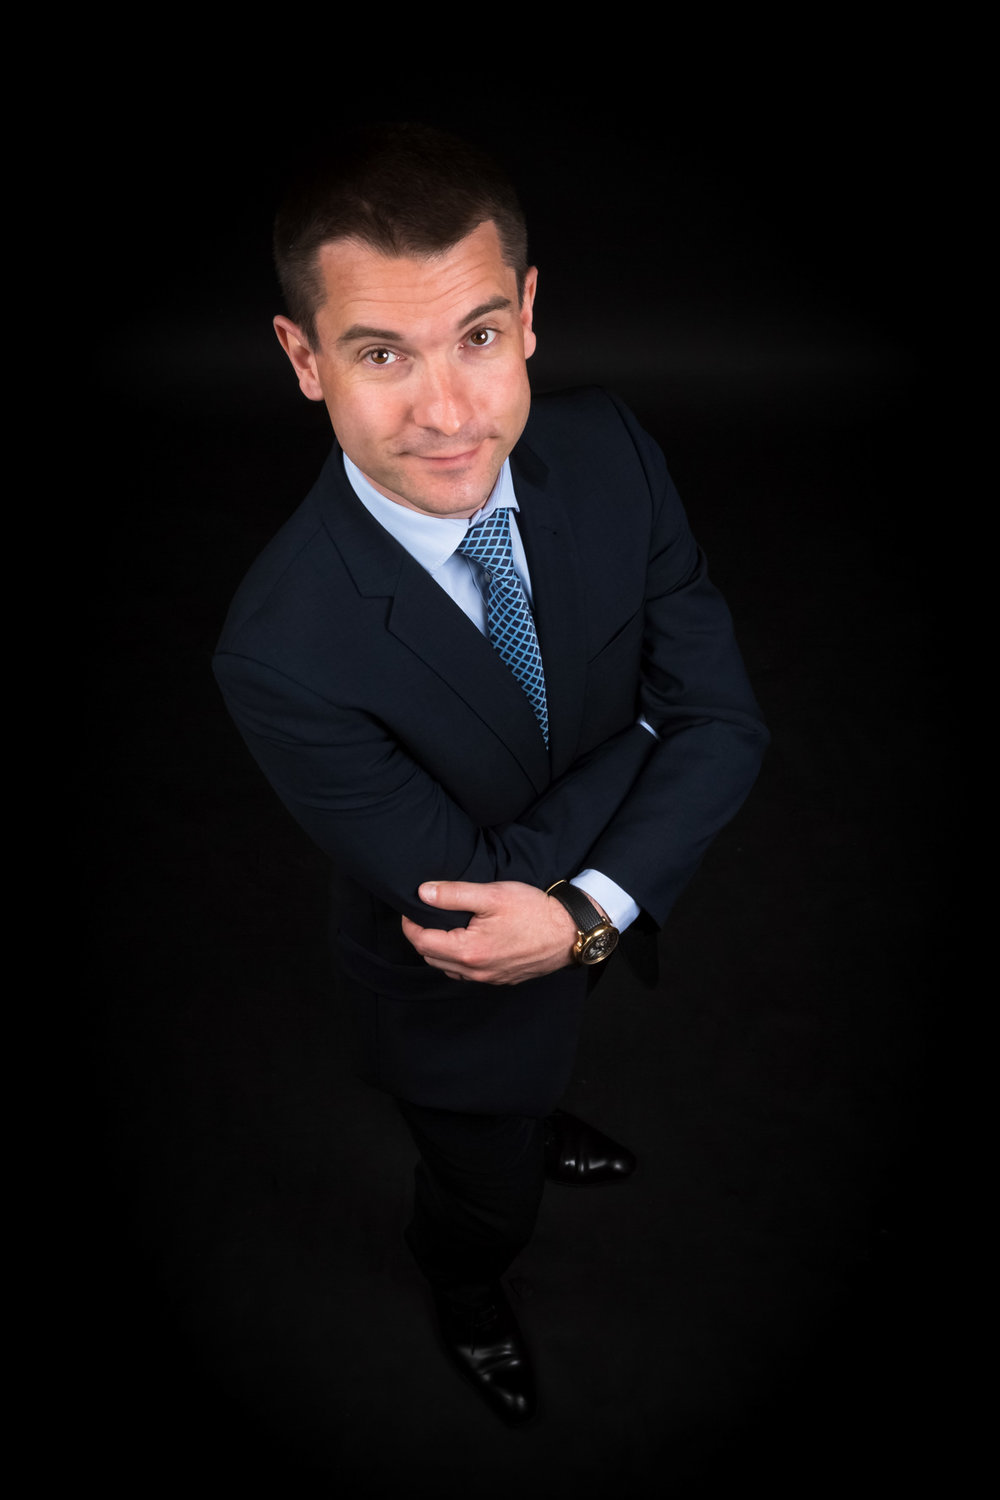 shooting-studio-portrait-corporate-business.jpg